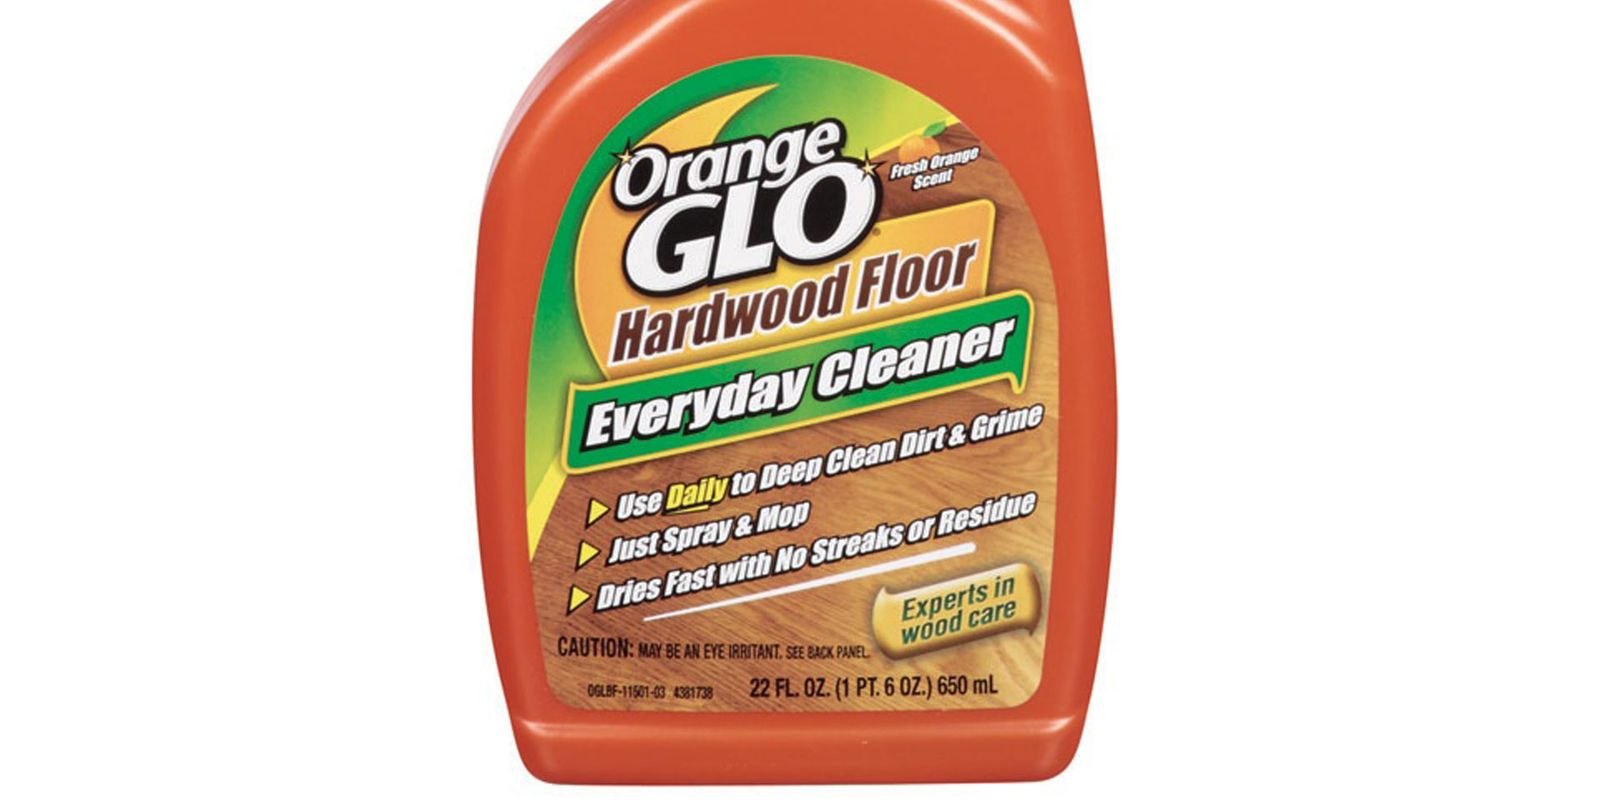 Cleaner For Hardwood Floors all natural hardwood floor cleaner so easy to make and boy does it do great Wood Floor Cleaners